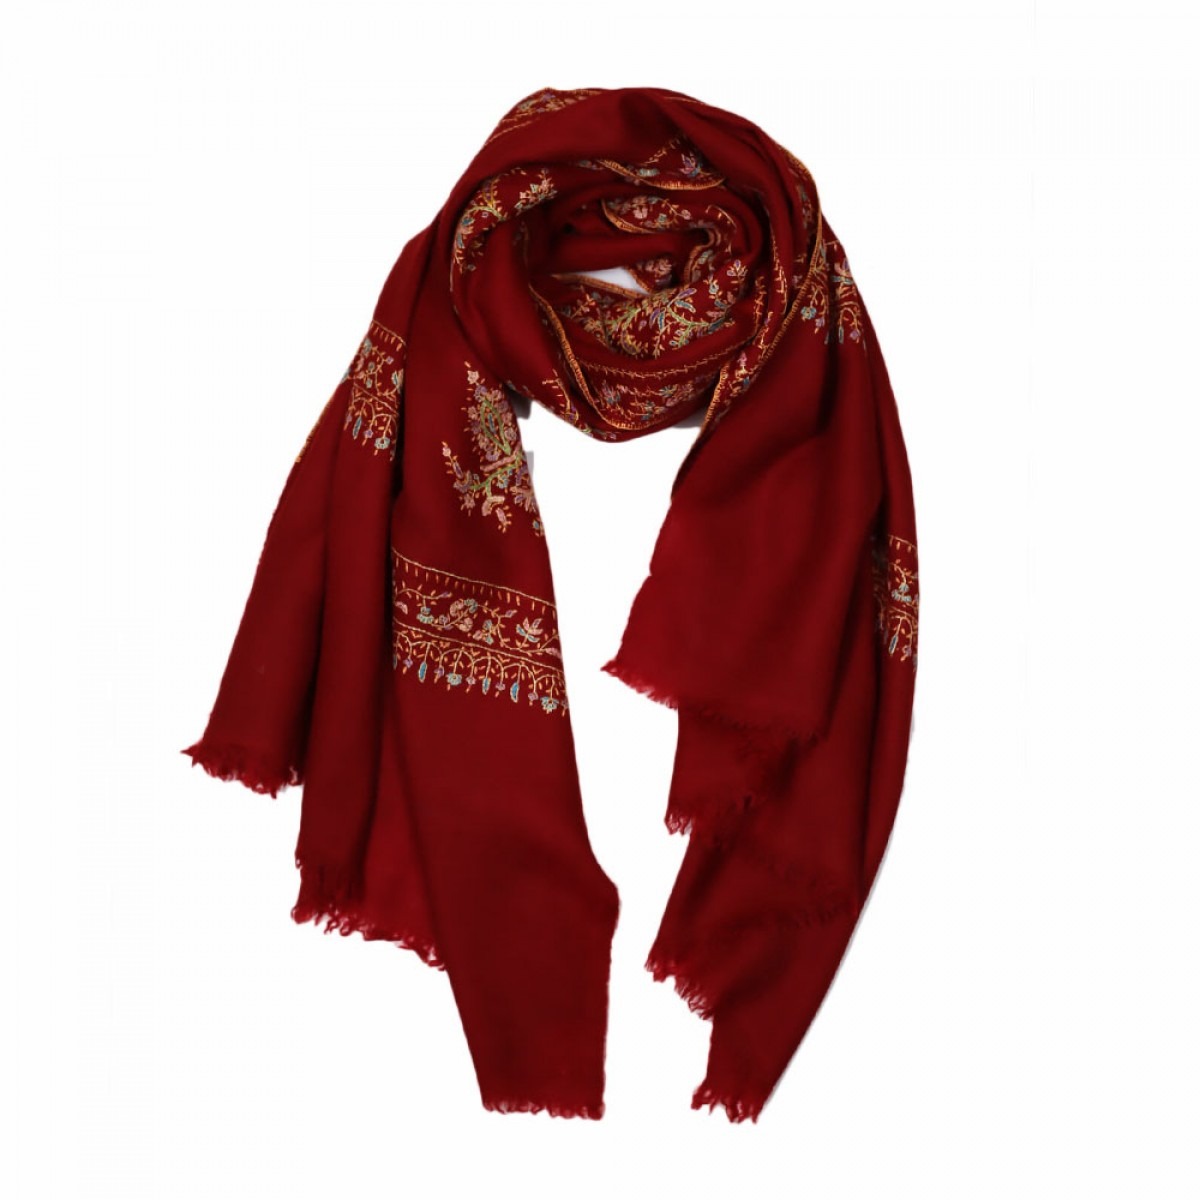 Embroidered Handloom Pashmina Stole - Crimson Red